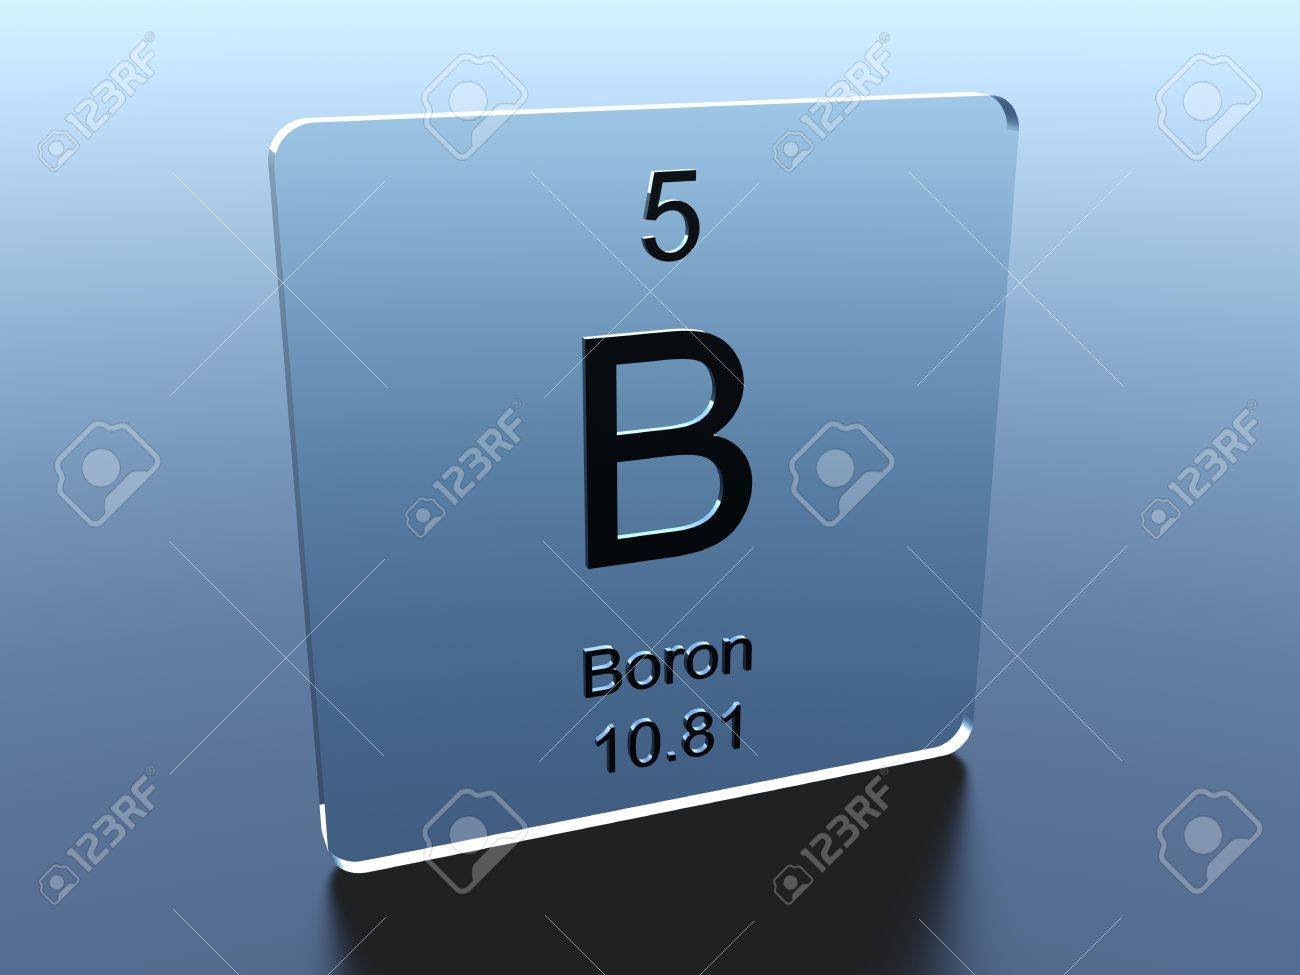 Boron symbol on a glass square stock photo picture and royalty boron symbol on a glass square stock photo 58215566 buycottarizona